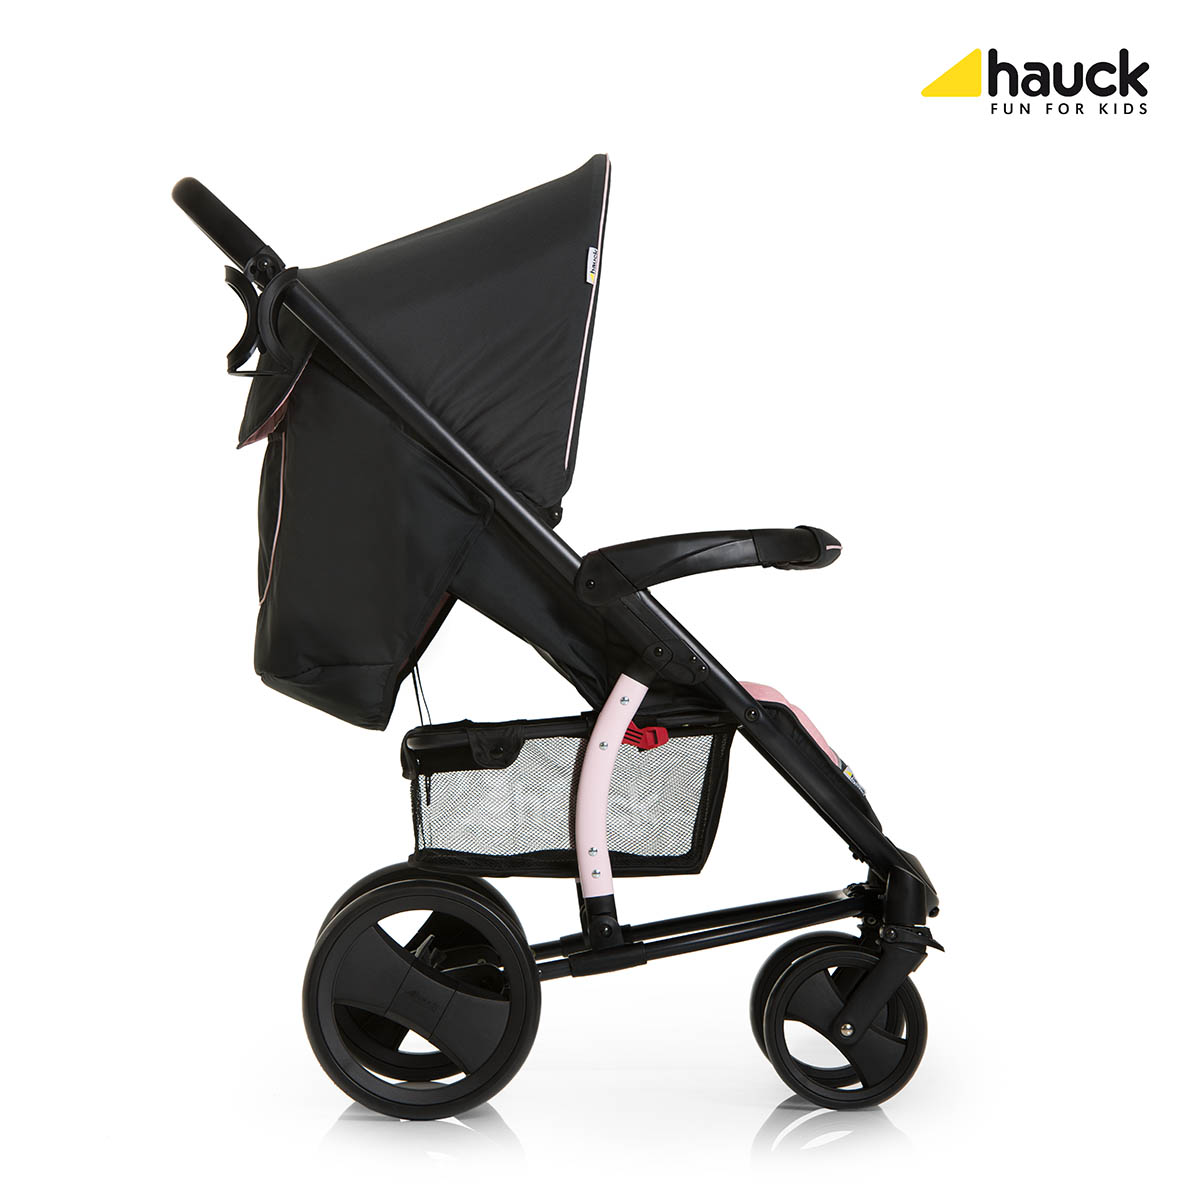 hauck malibu xl sport stroller buy at kidsroom strollers. Black Bedroom Furniture Sets. Home Design Ideas